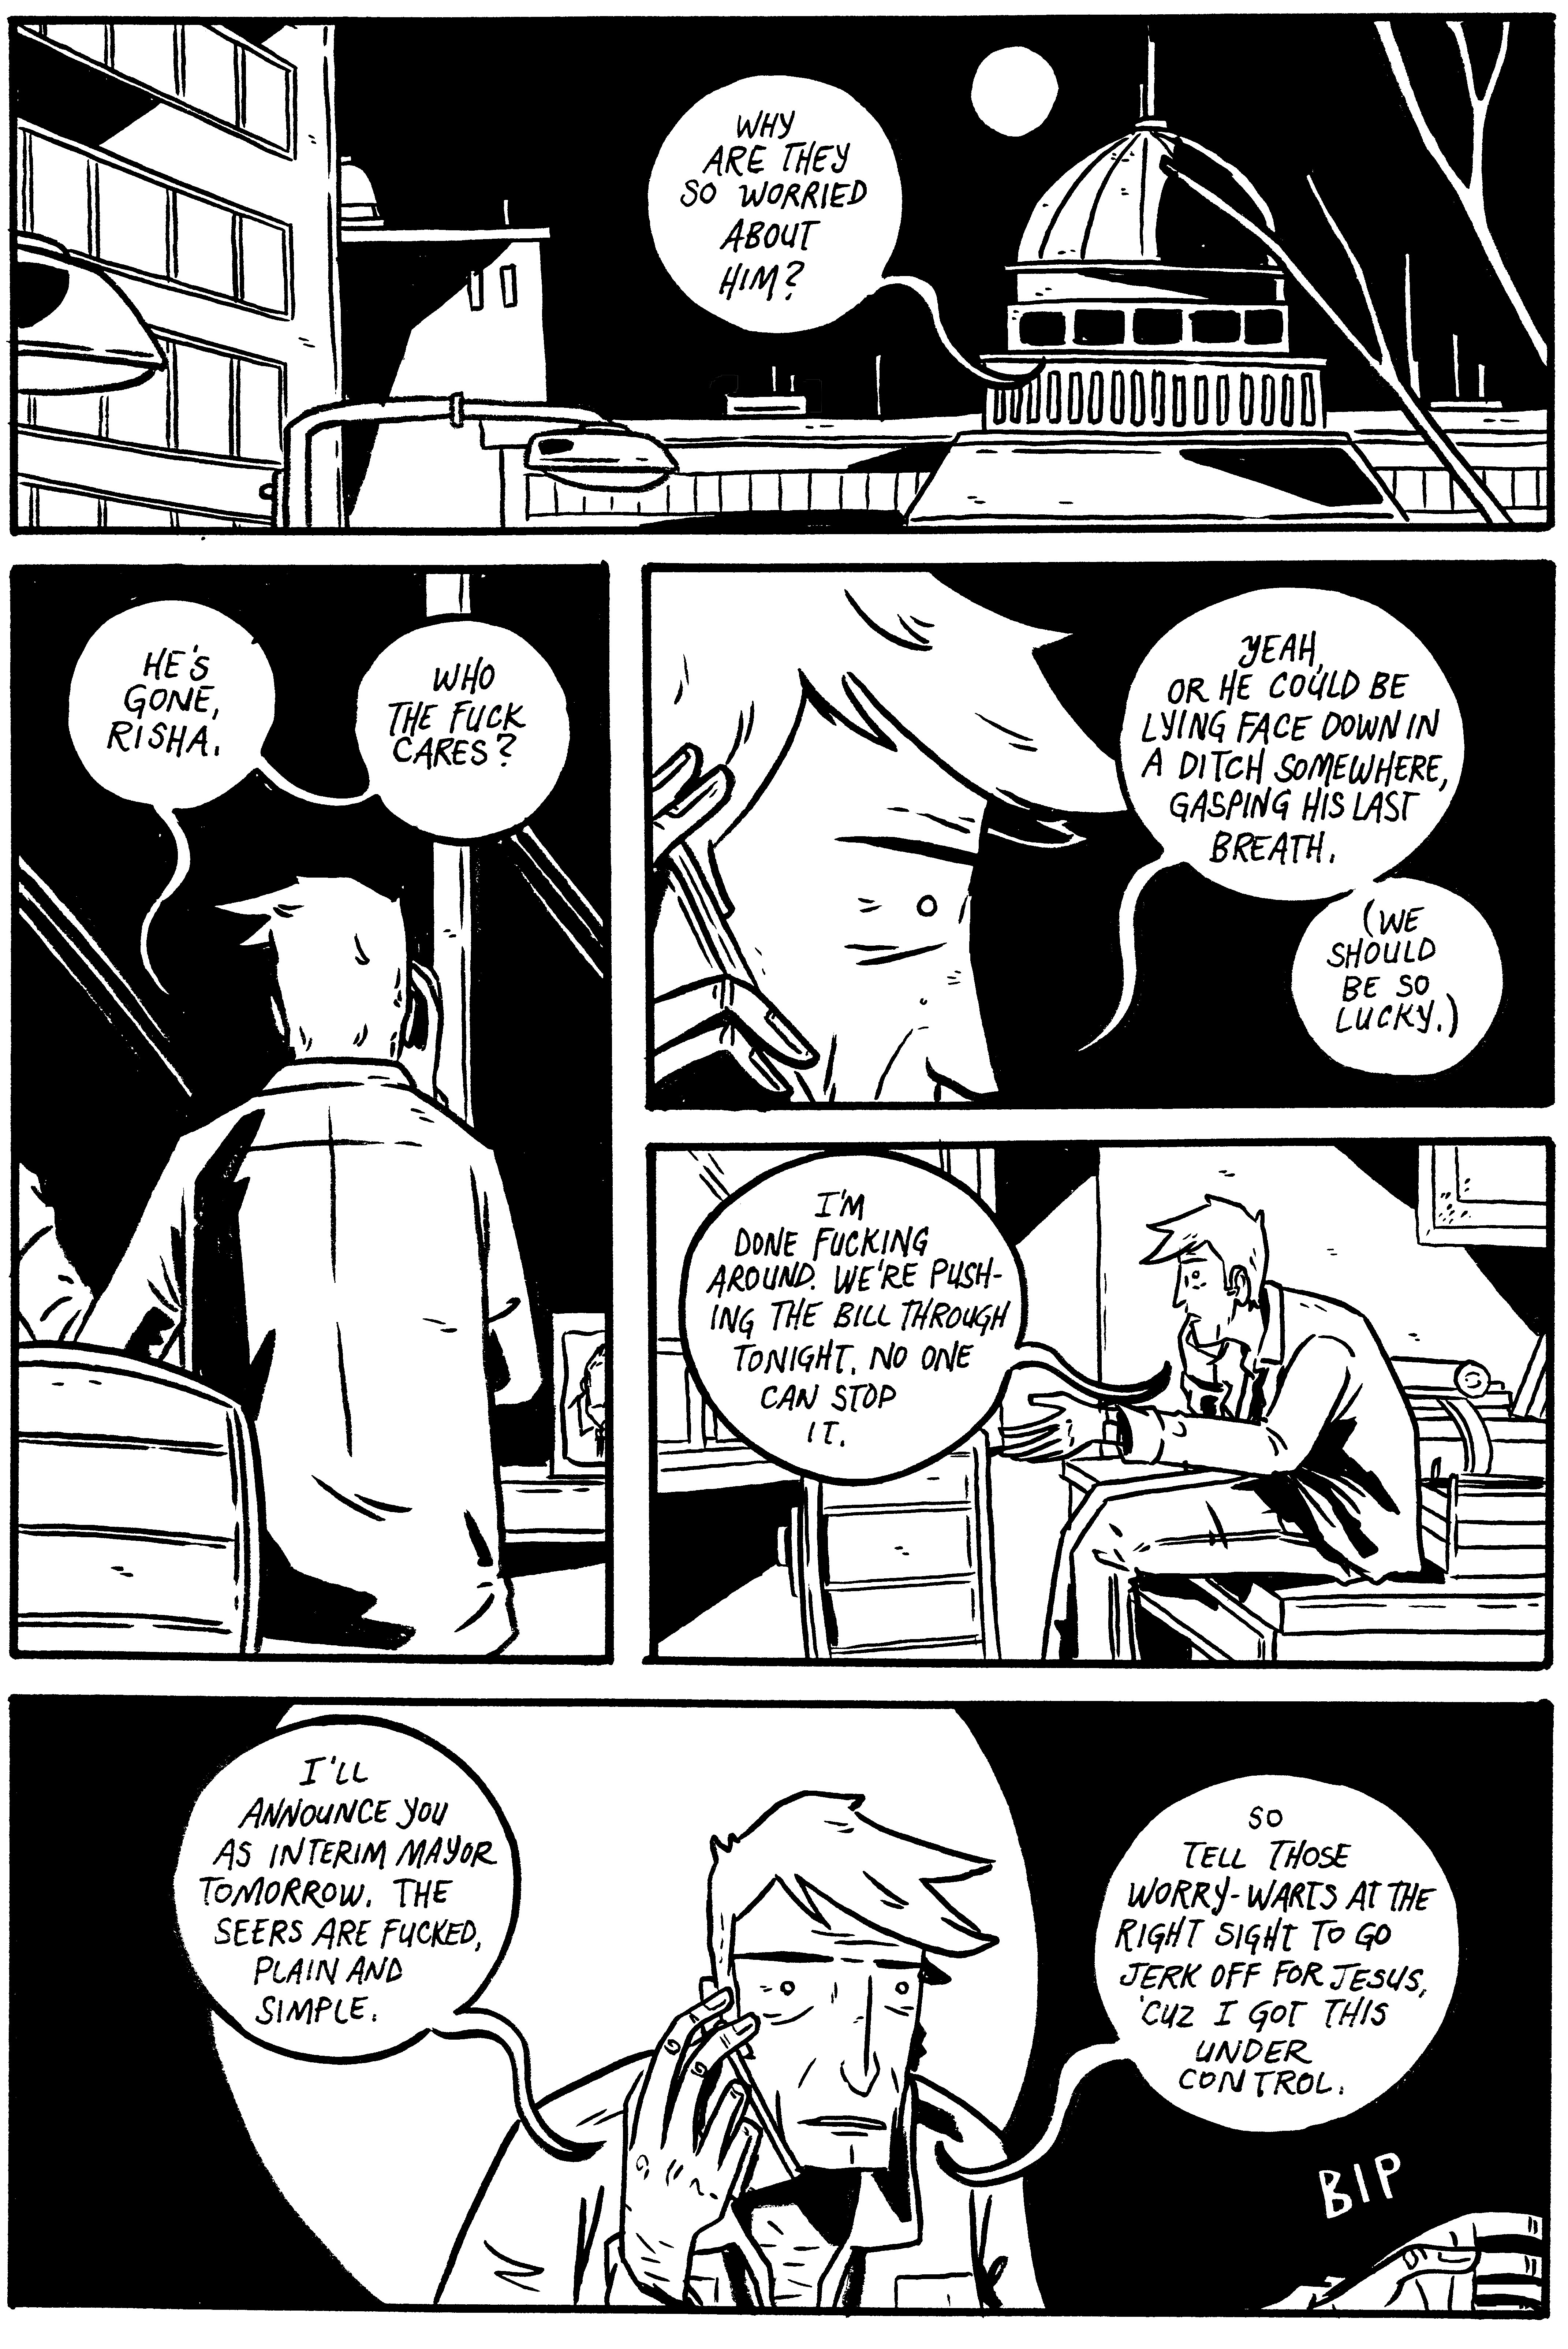 Carbon – page 139